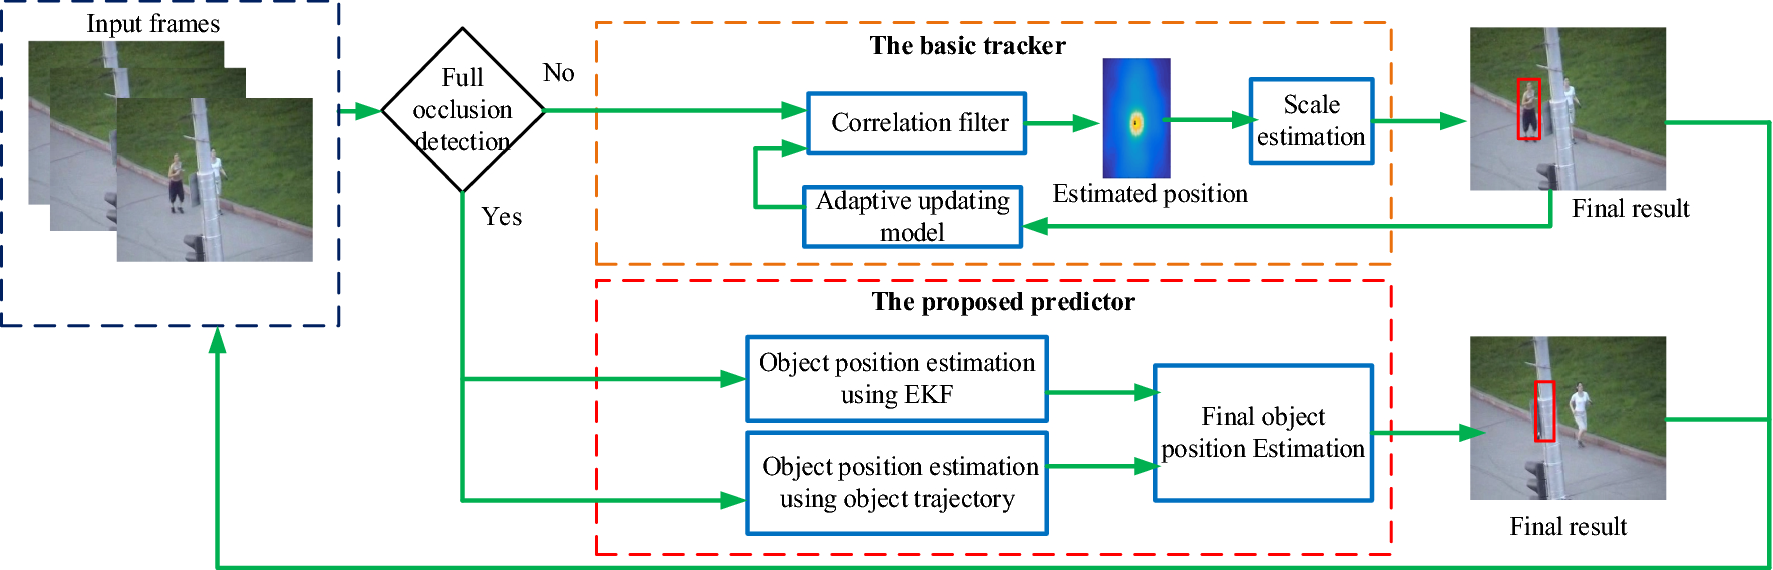 Real-time object tracking based on an adaptive transition model and